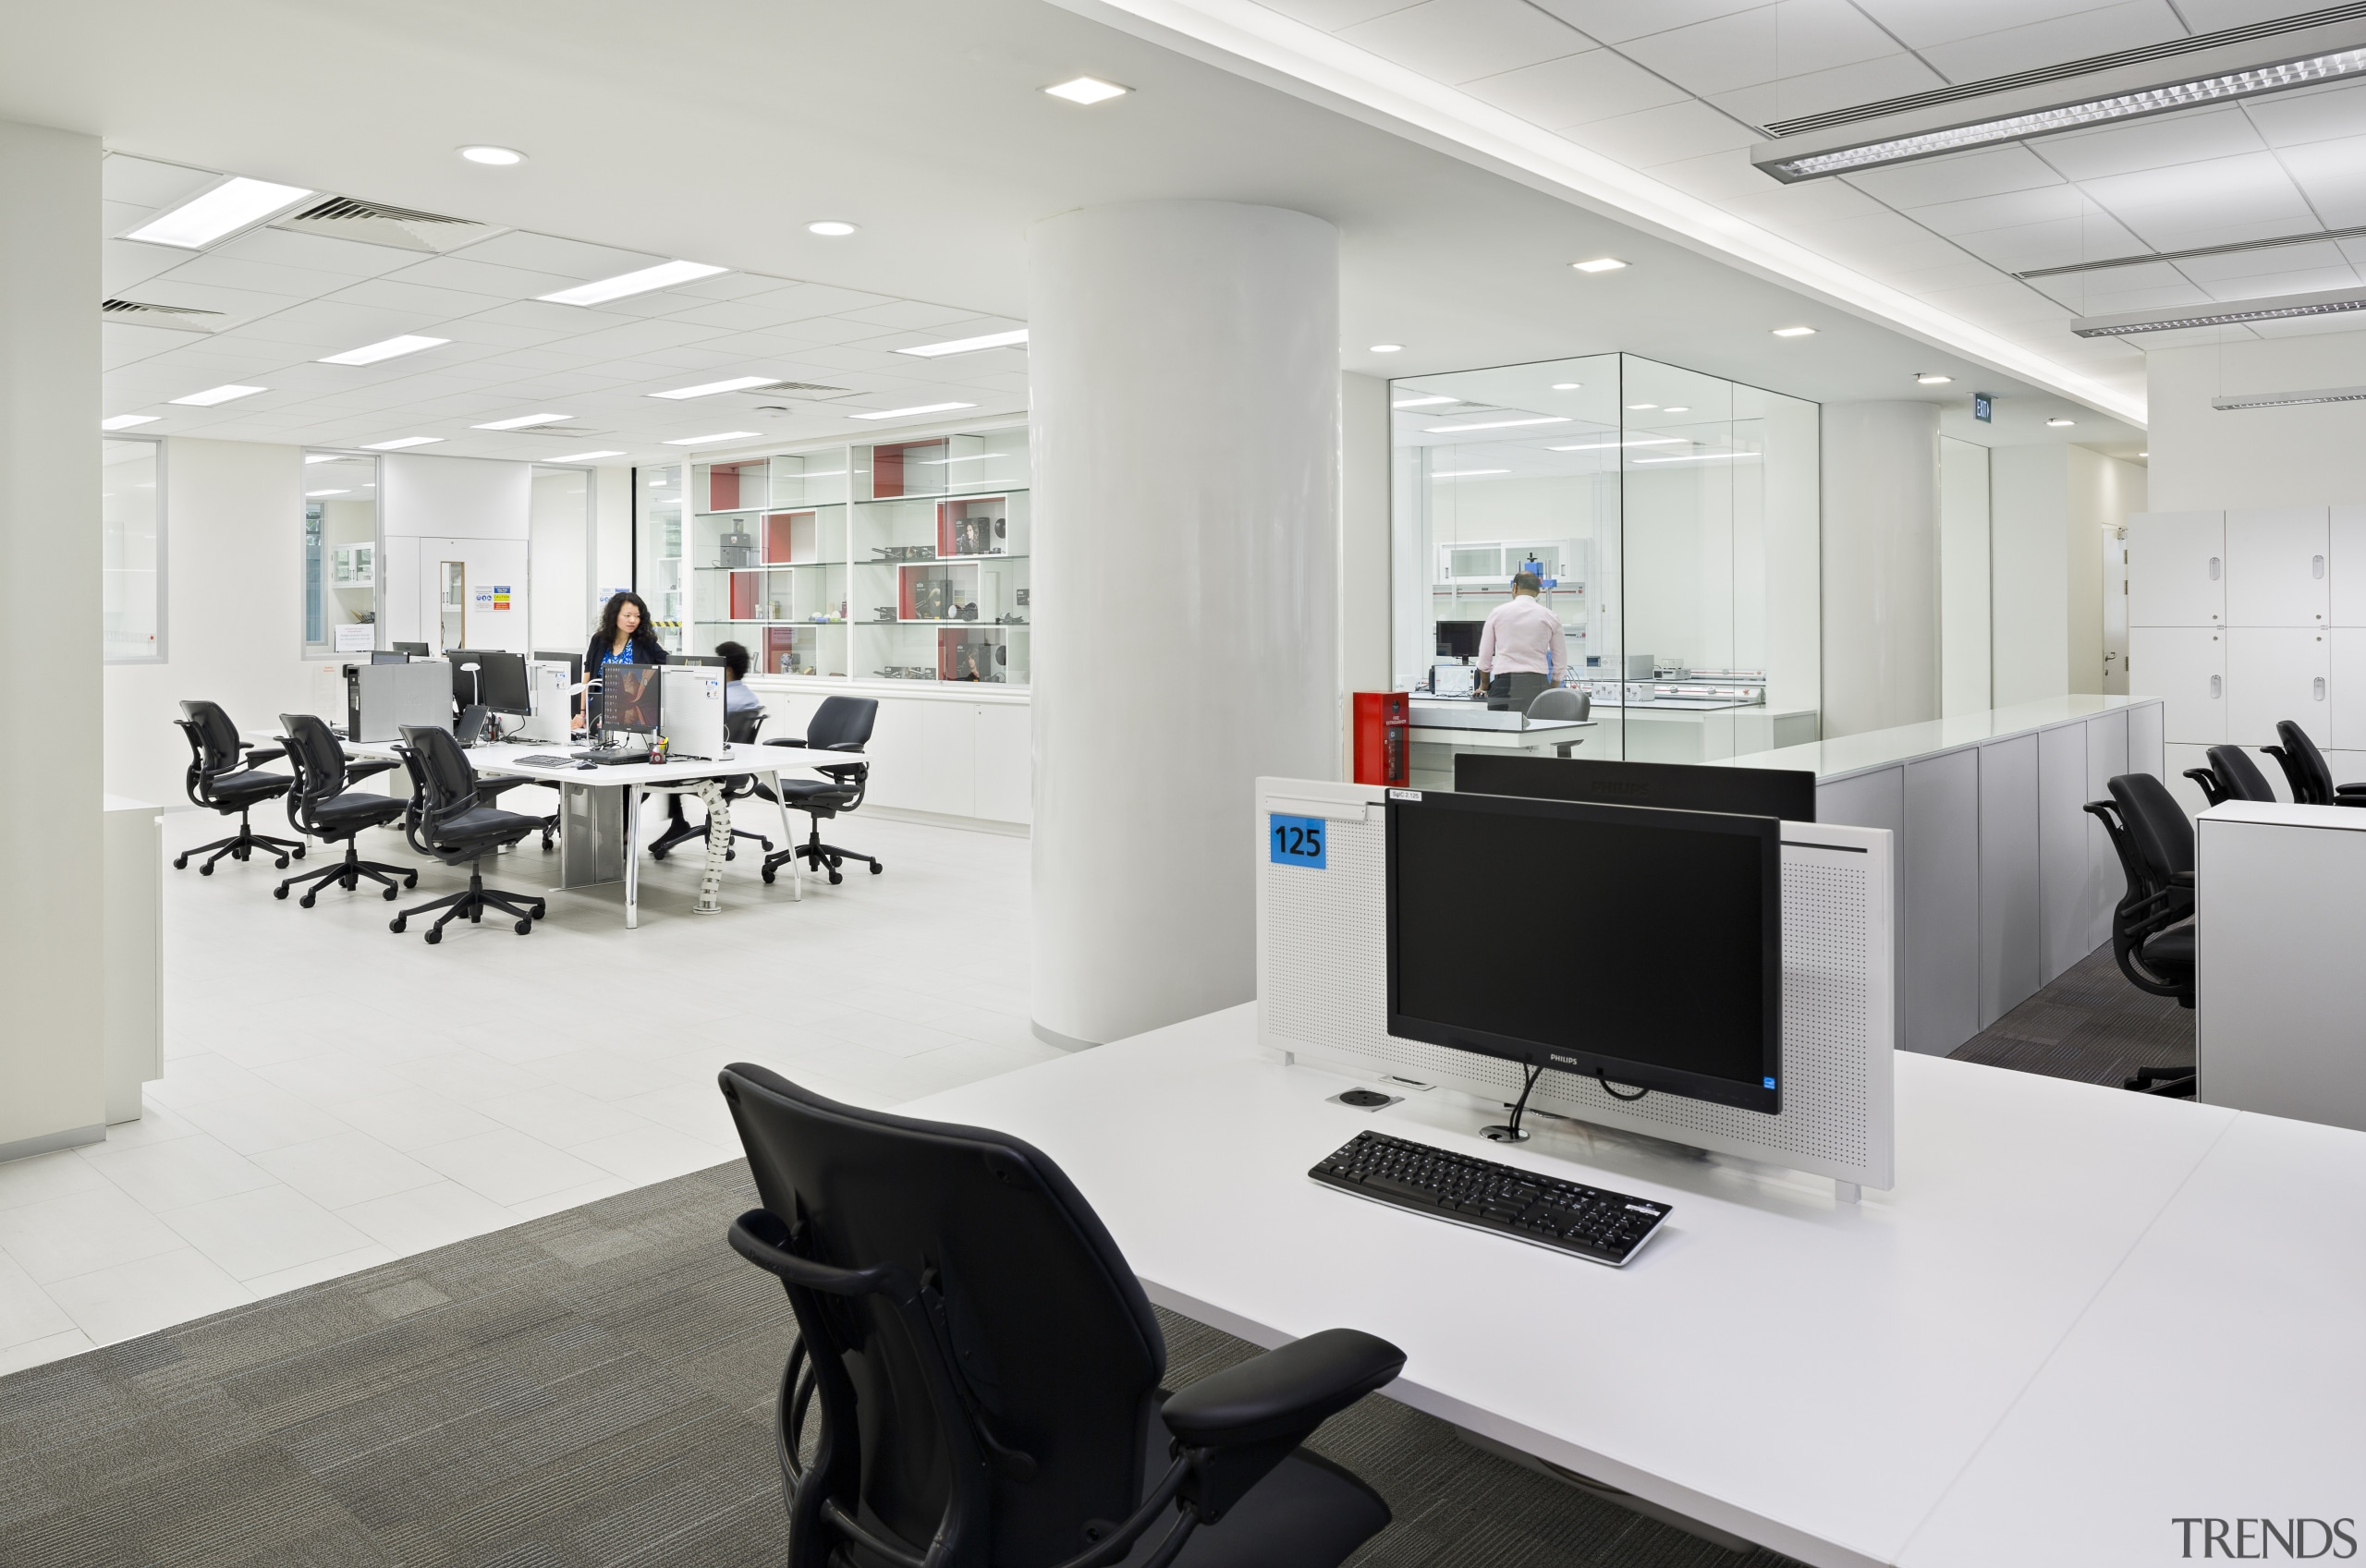 The key objective for the P&G Singapore fit-out interior design, office, product design, white